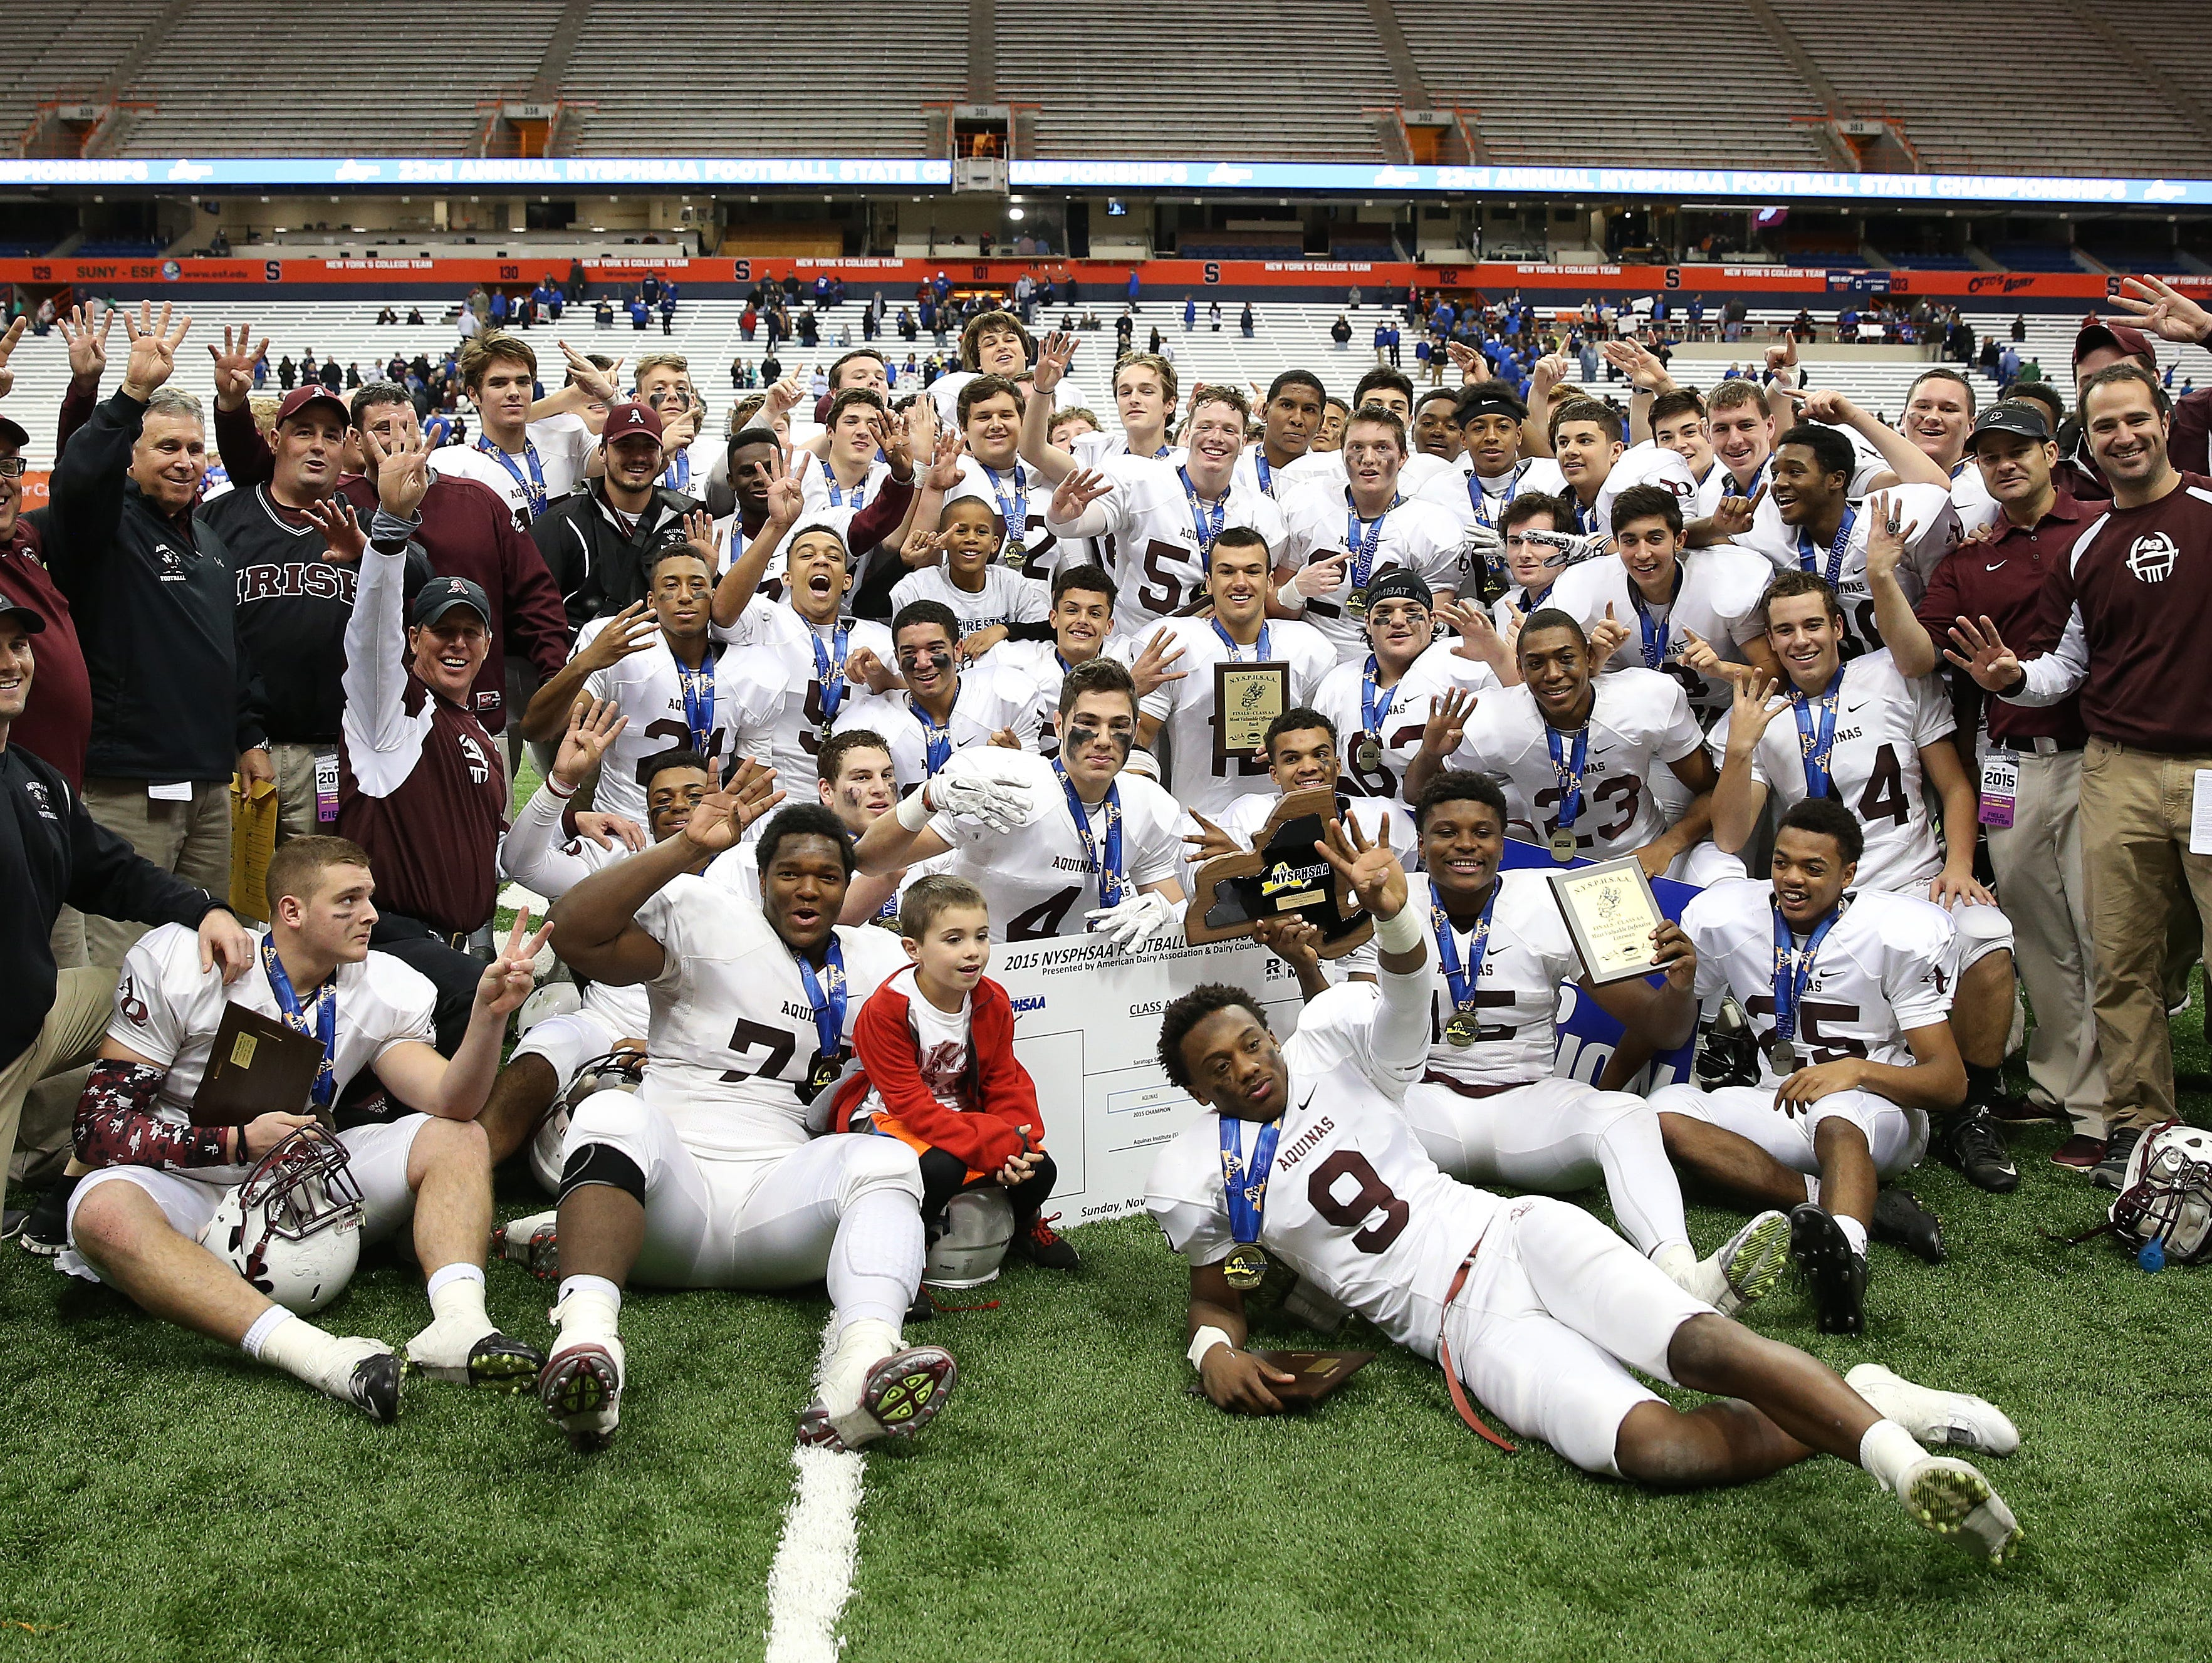 Aquinas players gather for a team photo after beating Saratoga Springs 44-19 to win the State Class AA title.